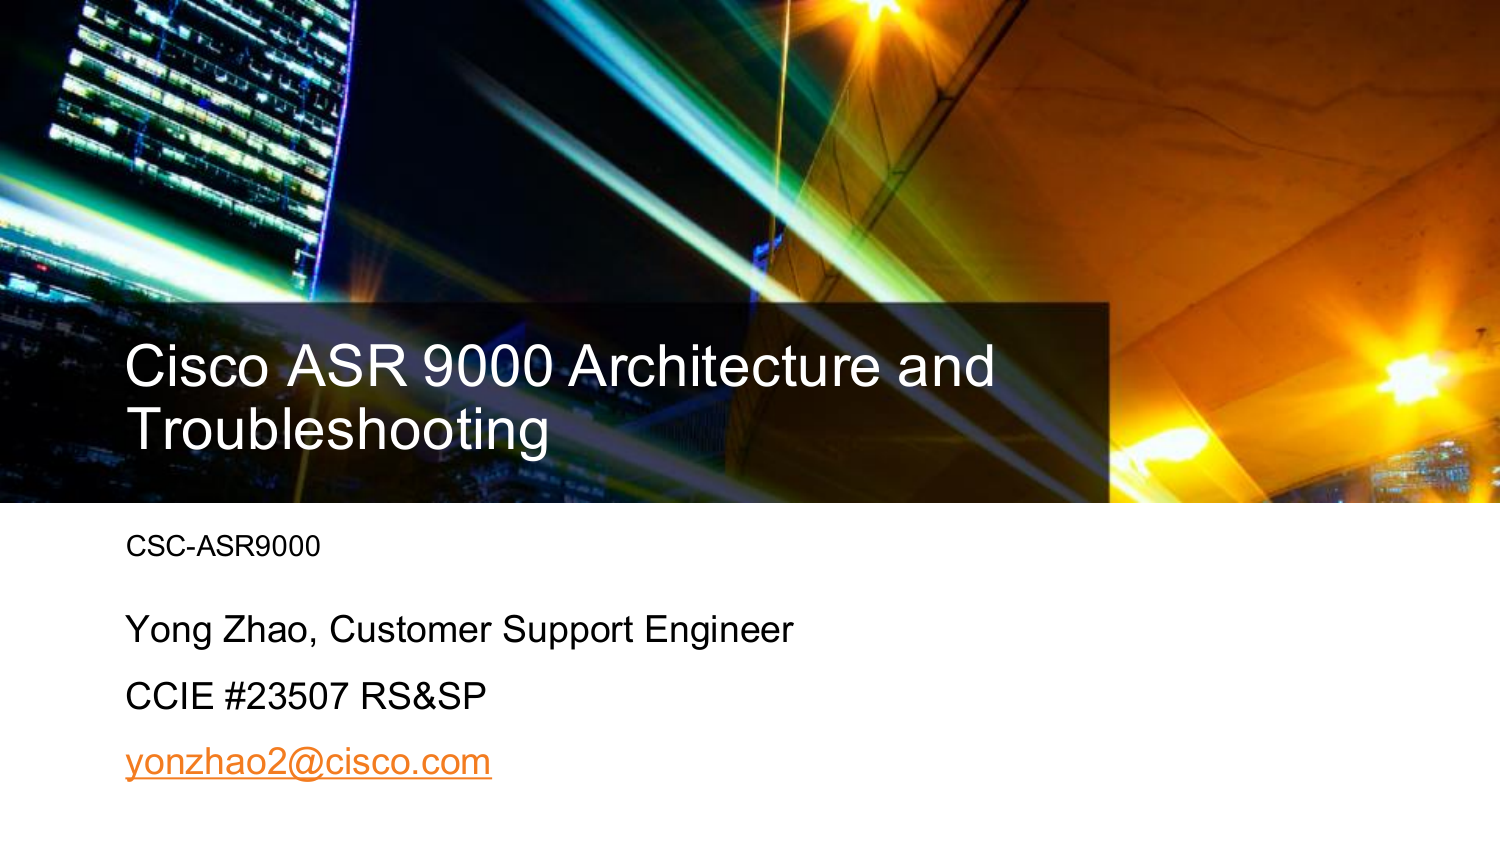 Cisco ASR 9000 Architecture and Troubleshooting